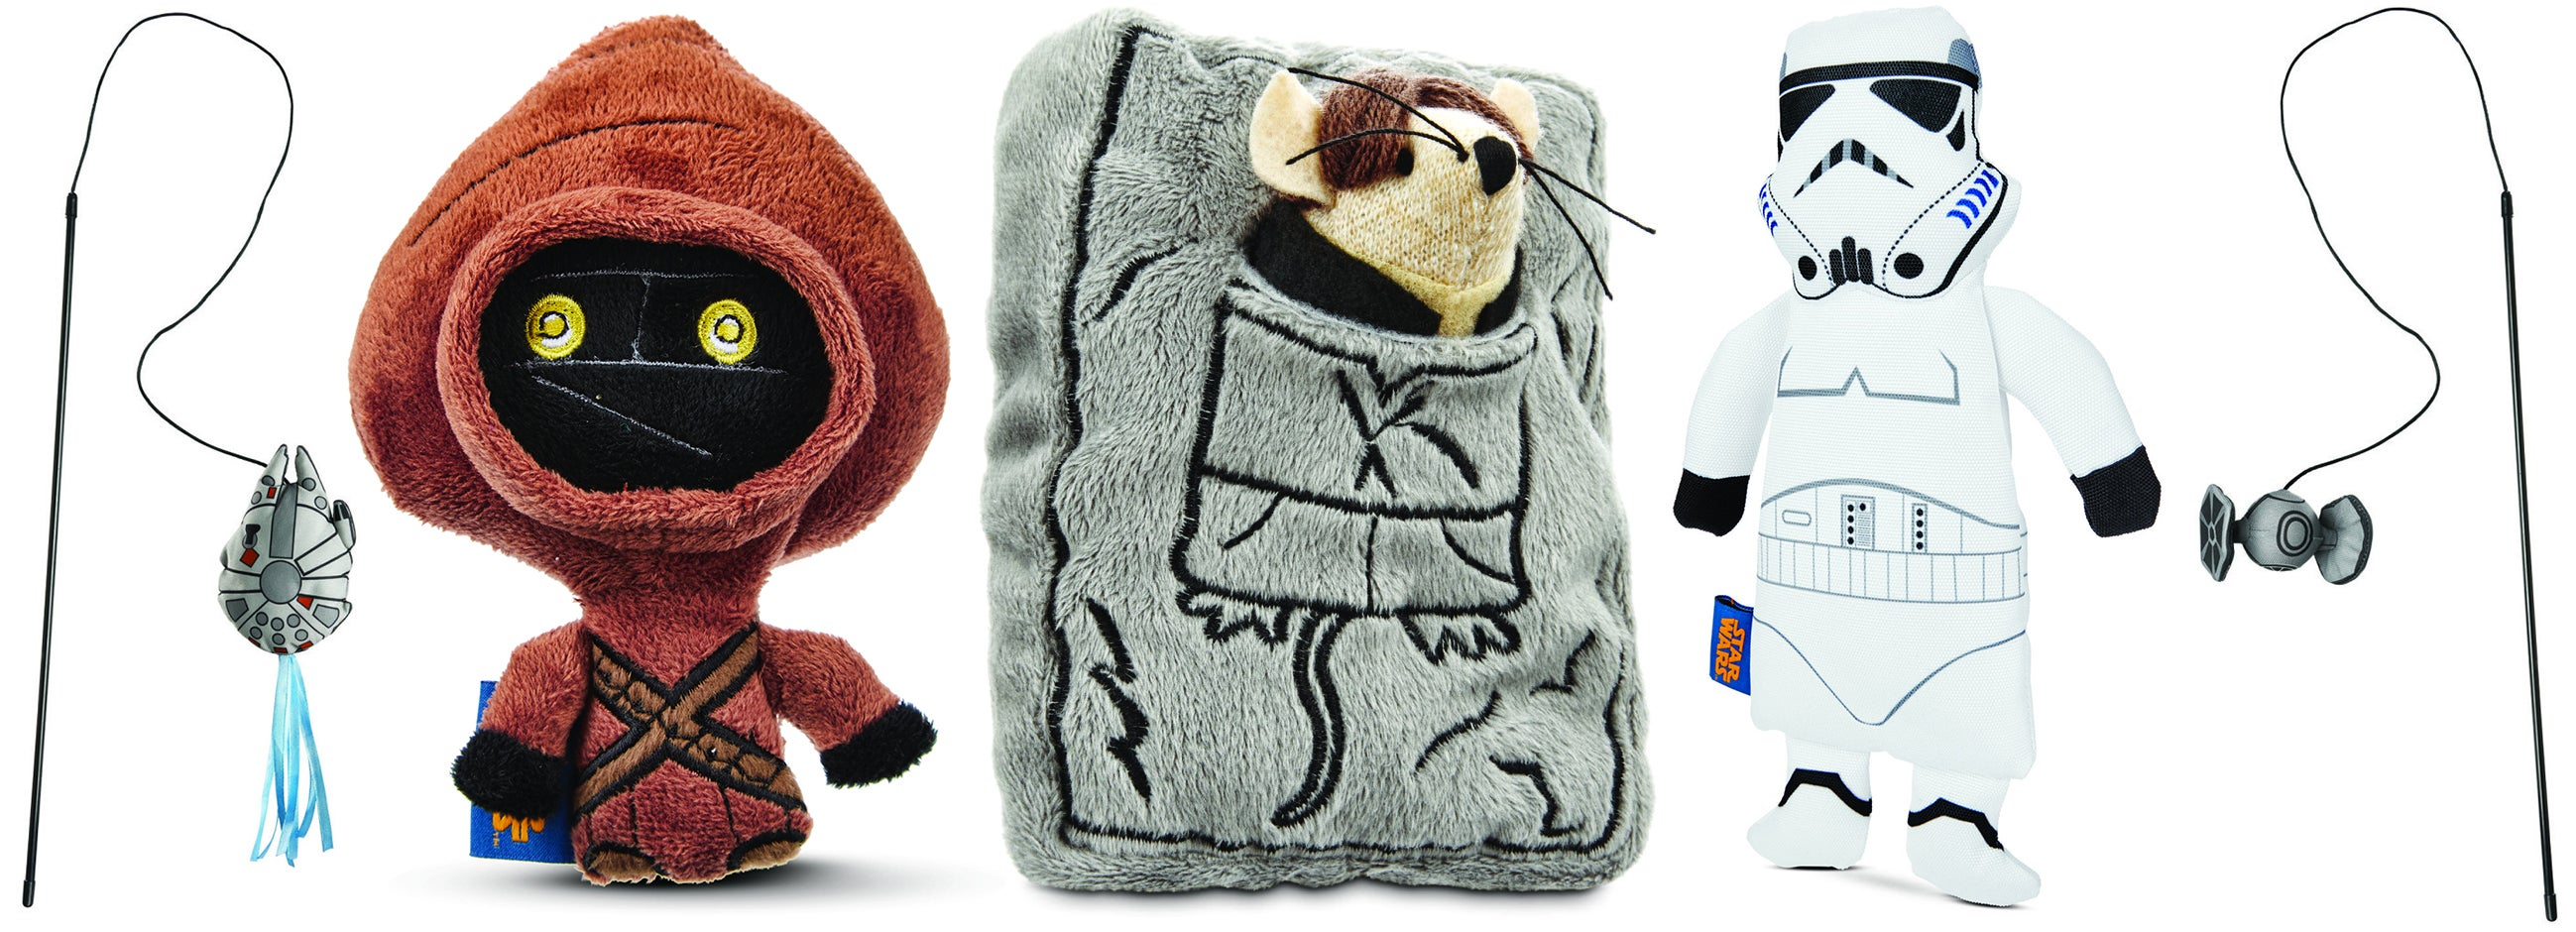 You'll Want These Star Wars Dog and Cat Toys More Than Your Pets Do